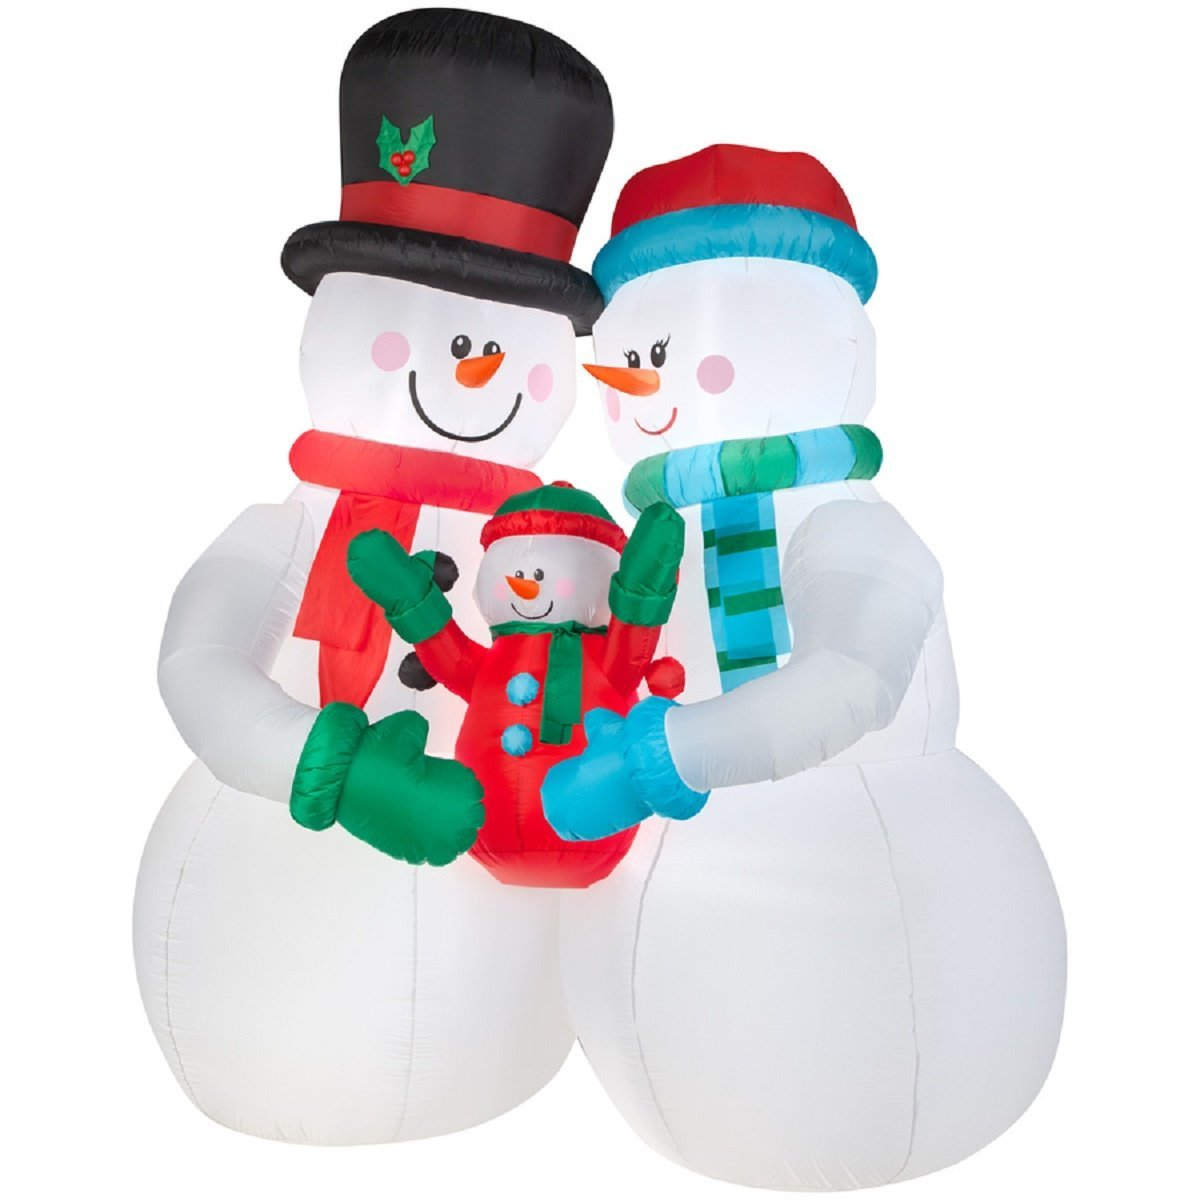 Cheap Inflatable Snowman Giant Outdoor, find Inflatable Snowman ...